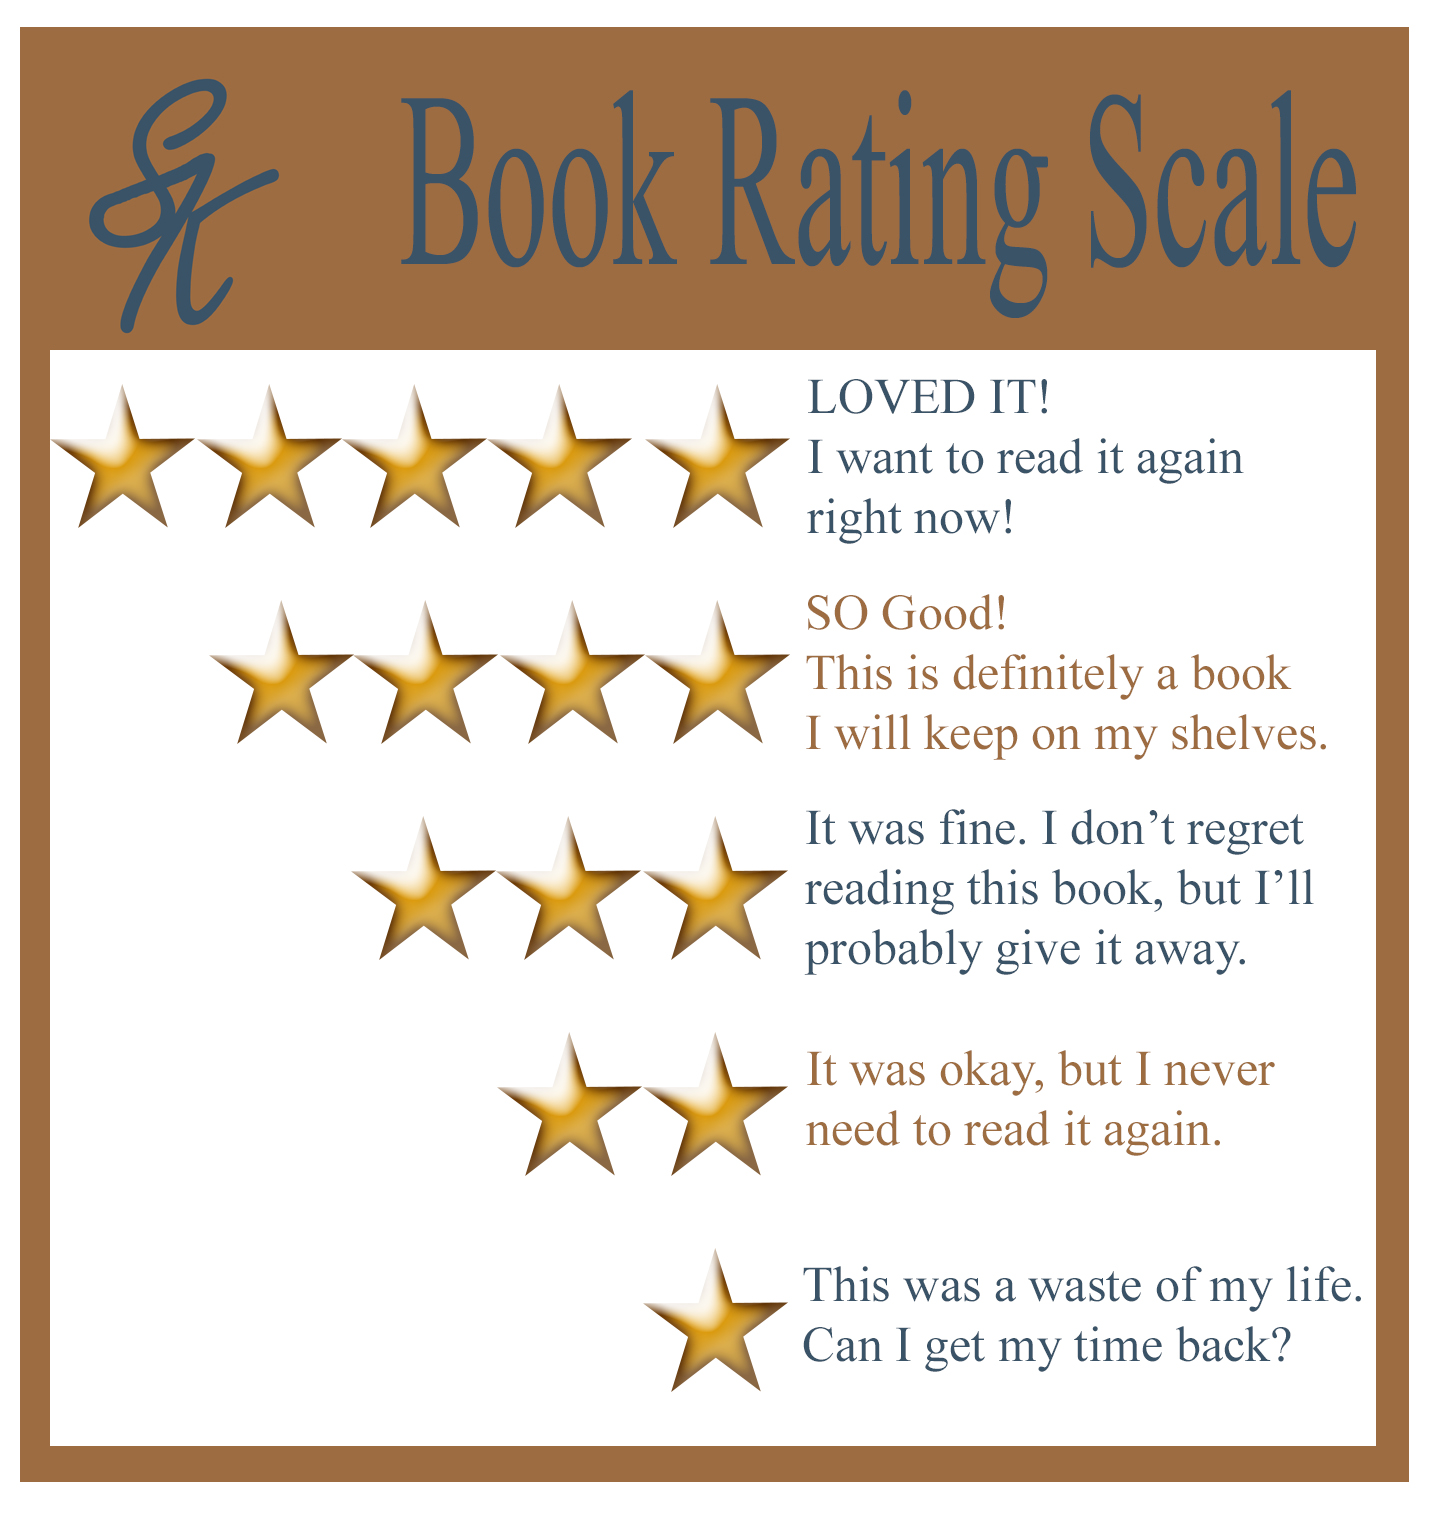 SK Book Rating Scale